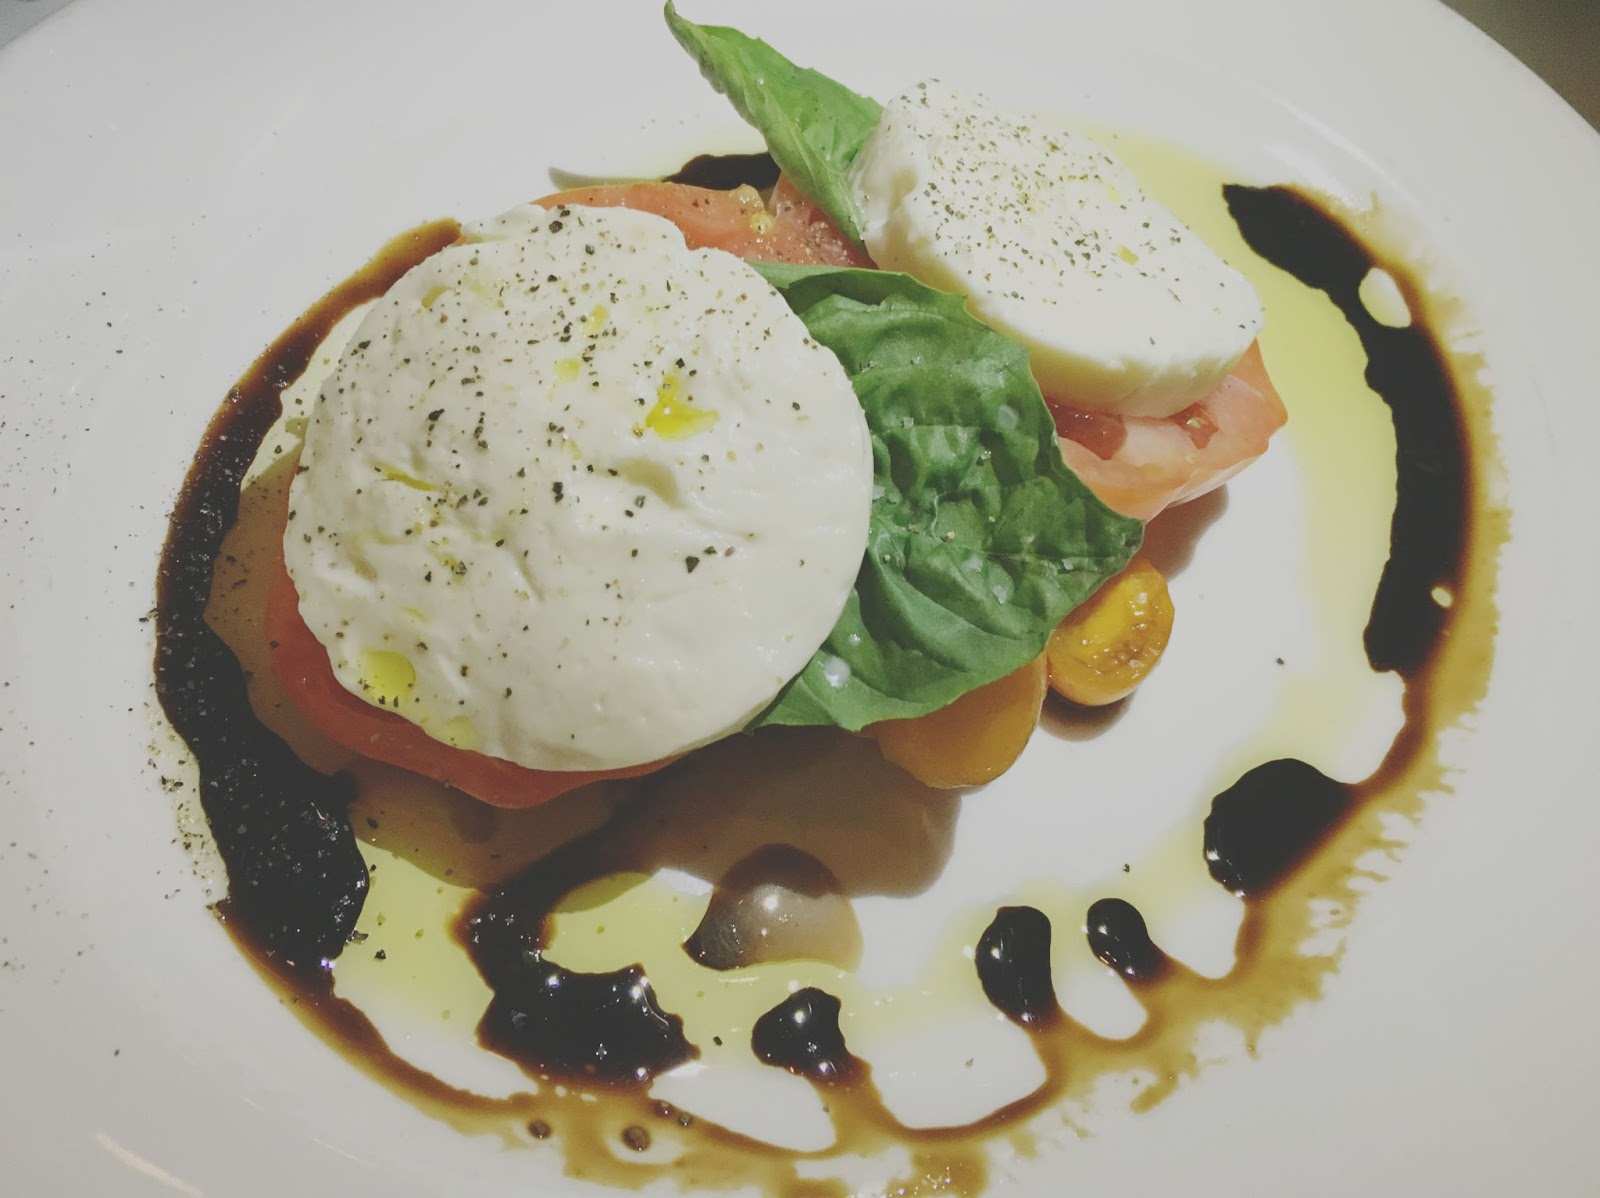 mozarella, tomato, and basil salad at The Capital Grille - A restaurant in Houston, Texas